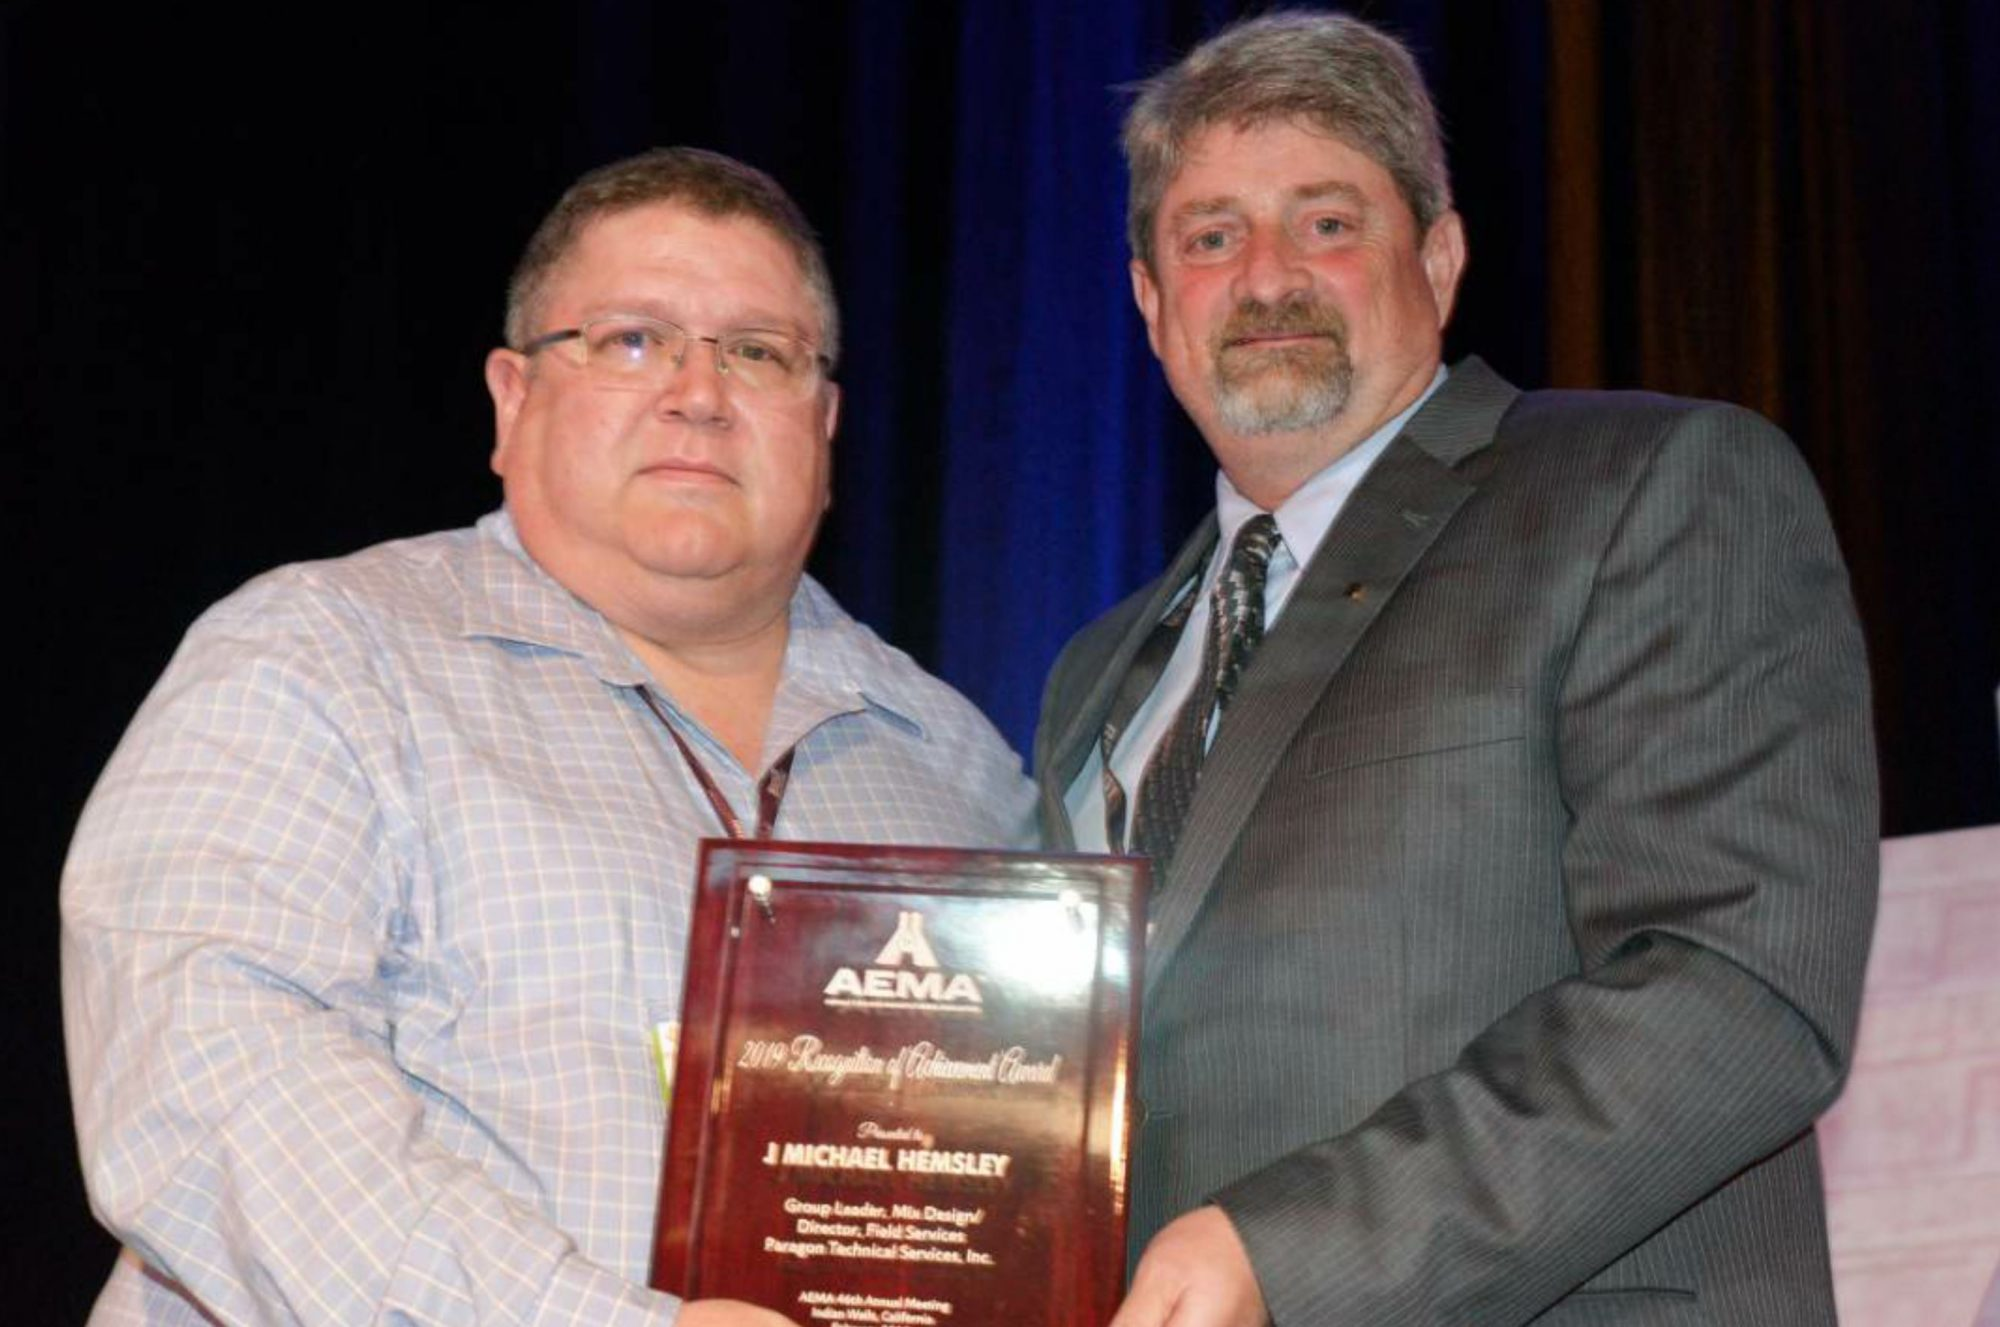 AEMA President Mark Ishee presents the 2019 Recognition of Achievement Award to Mike Hemsley, Paragon Technical Services. Photo by Tom Kuennen, courtesy of FP2.